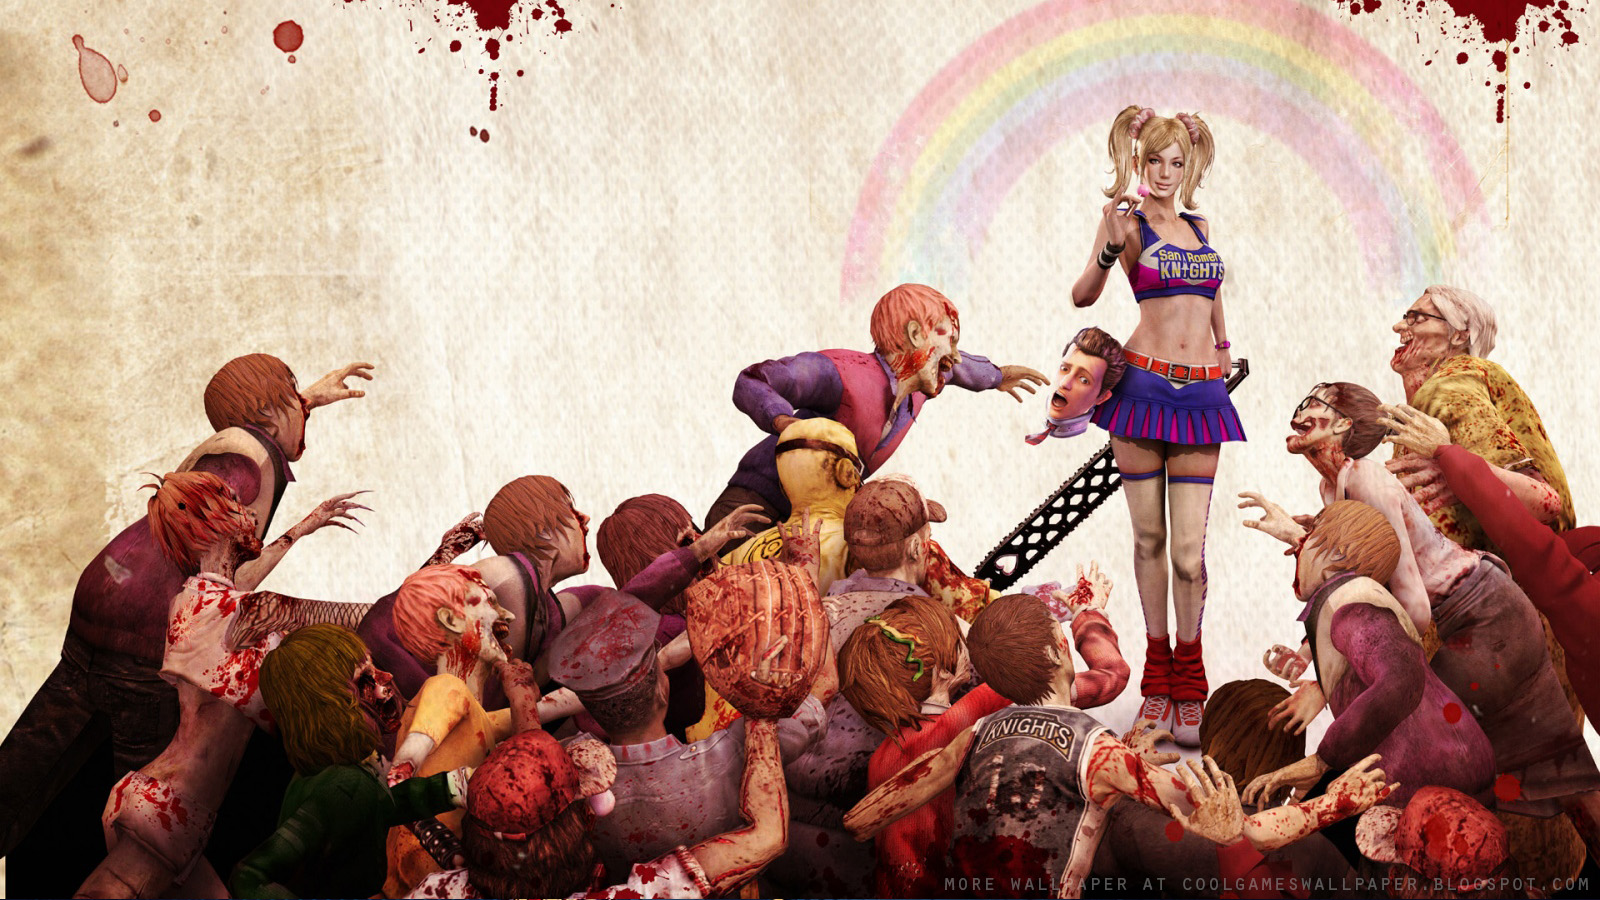 lollipop chainsaw zombie game wallpapers - Lollipop Chainsaw Zombie Game Your Wallpaper